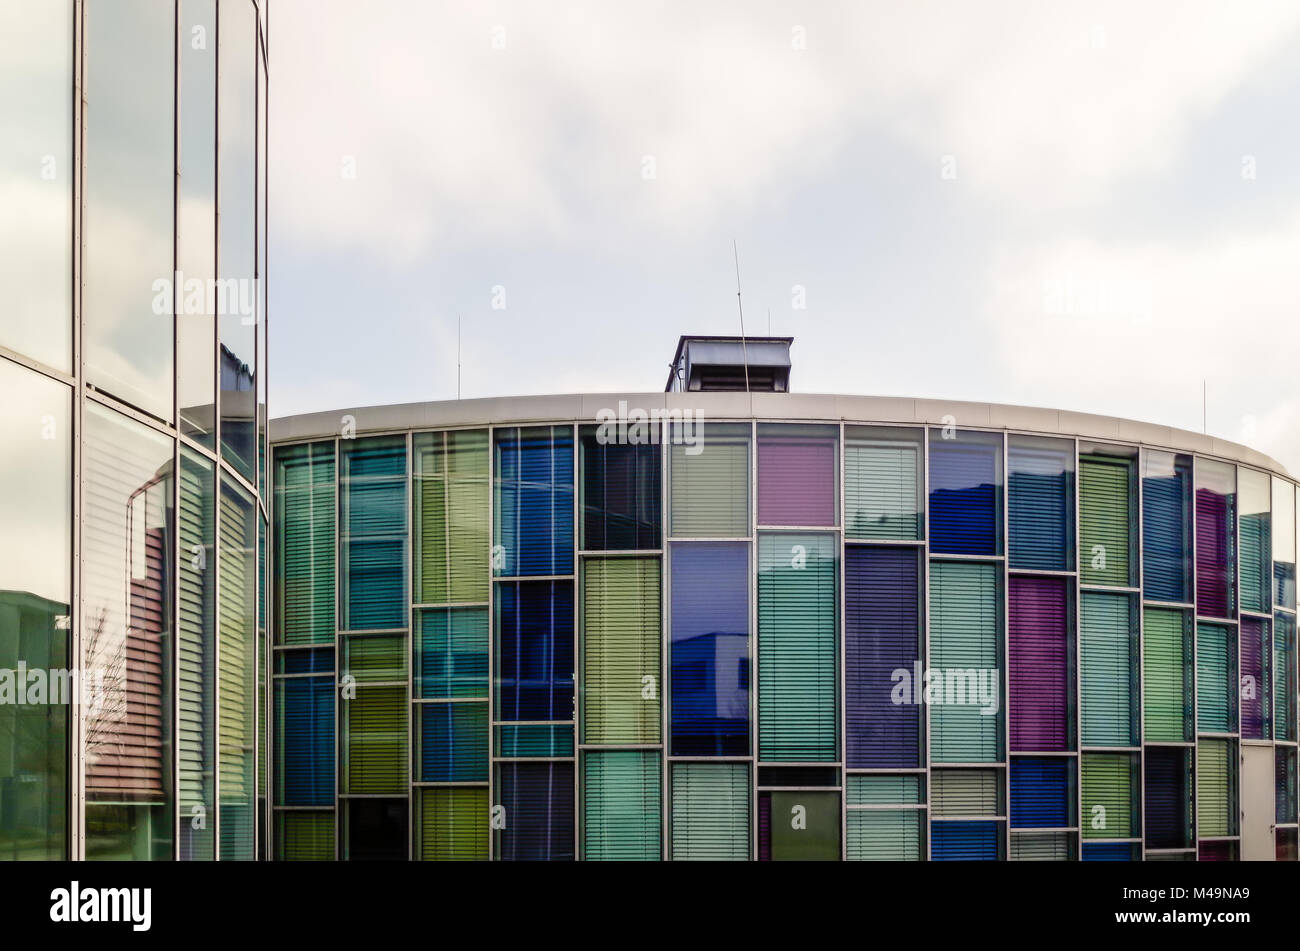 Skyscraper in the Science and Technology Park of Berlin-Adlershof, Germany. Stock Photo